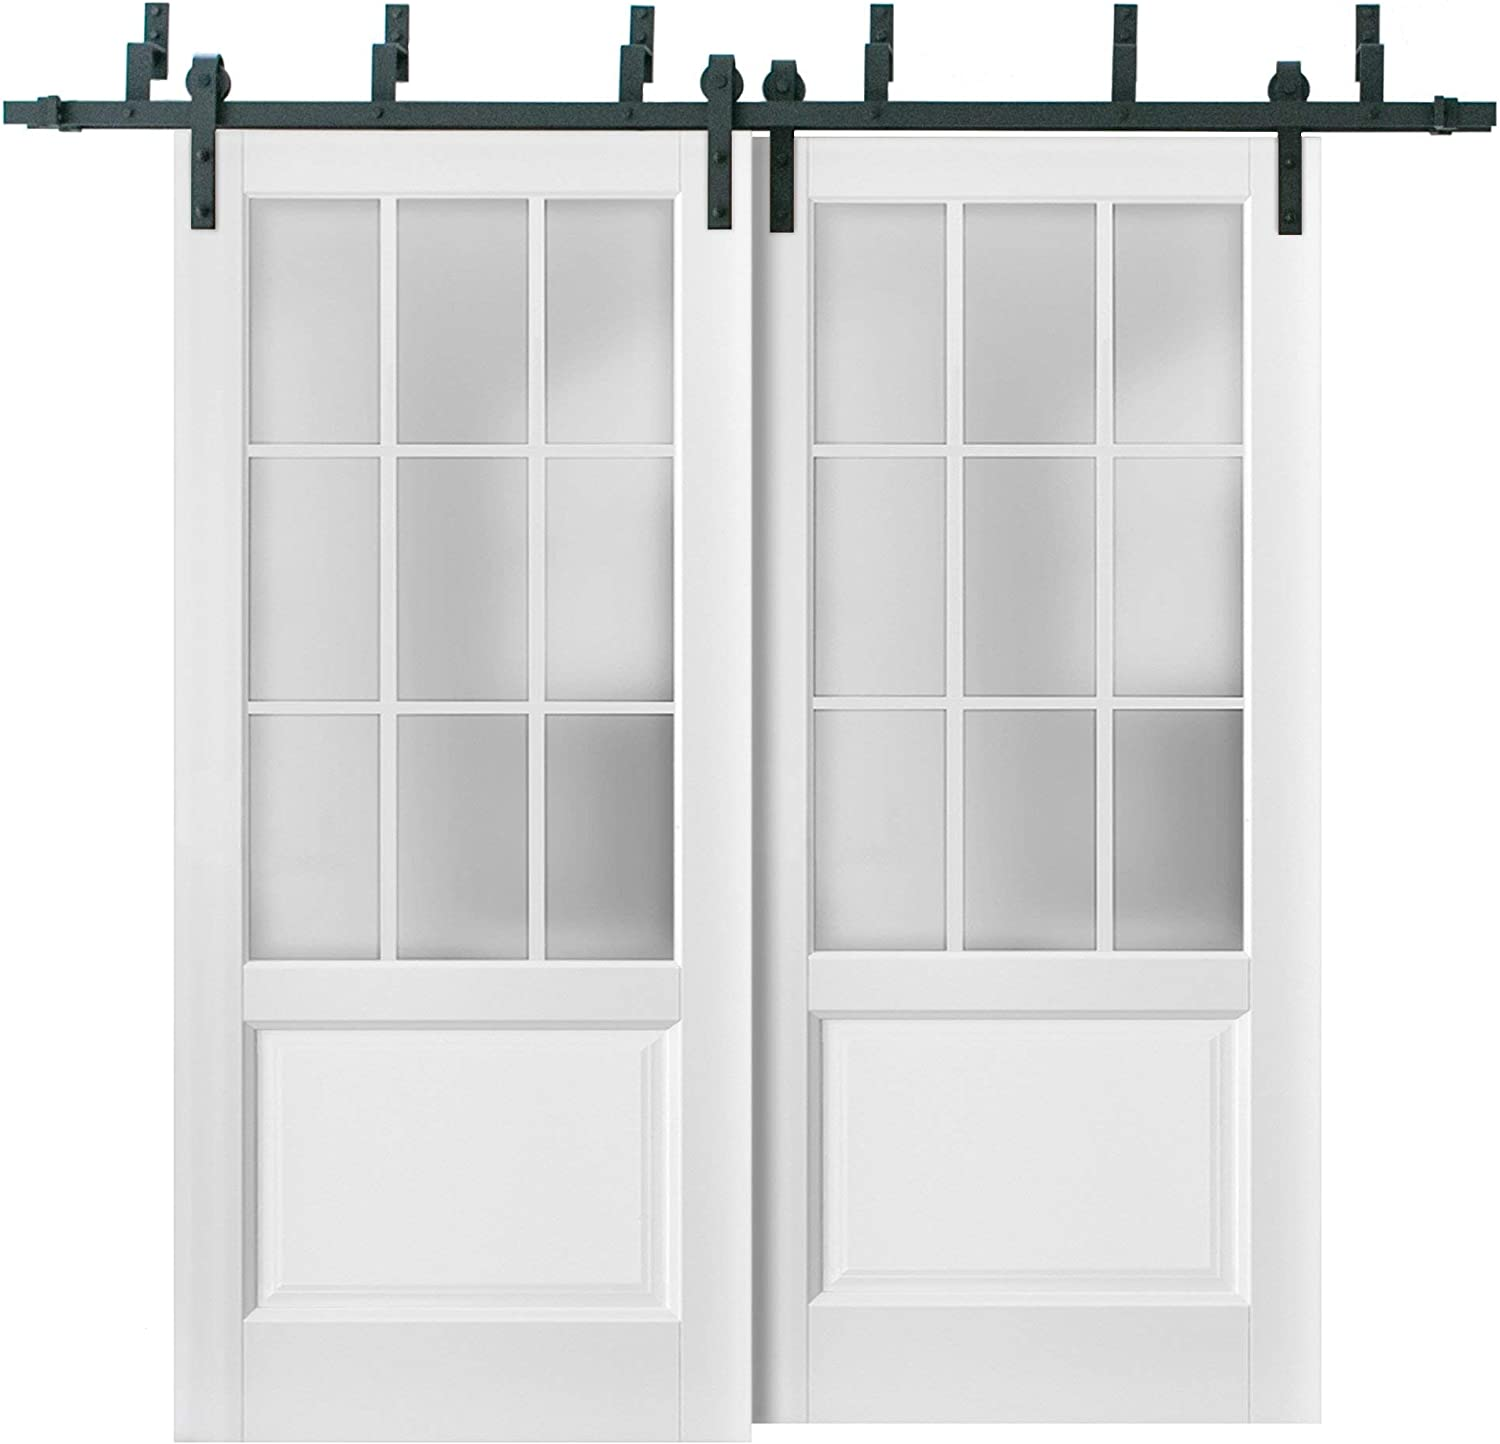 Sliding Closet Frosted New arrival Glass 9 Max 50% OFF Lites Barn Bypass Doors 84 i 56 x